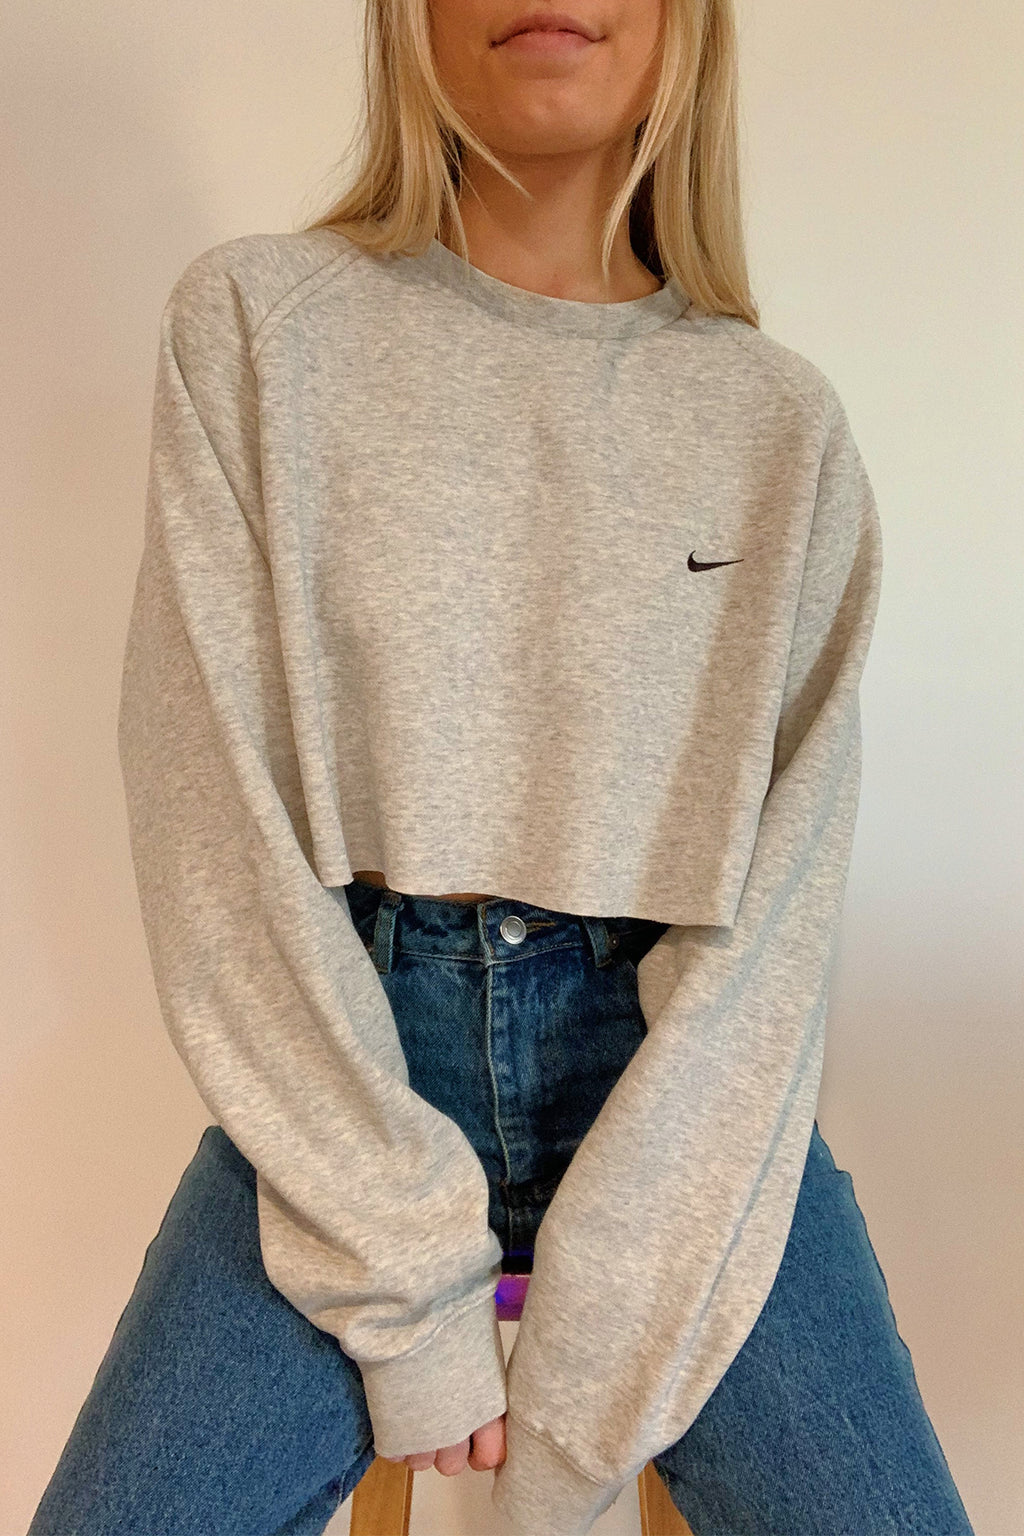 Vintage Nike Heather Grey Cut Off Sweatshirt